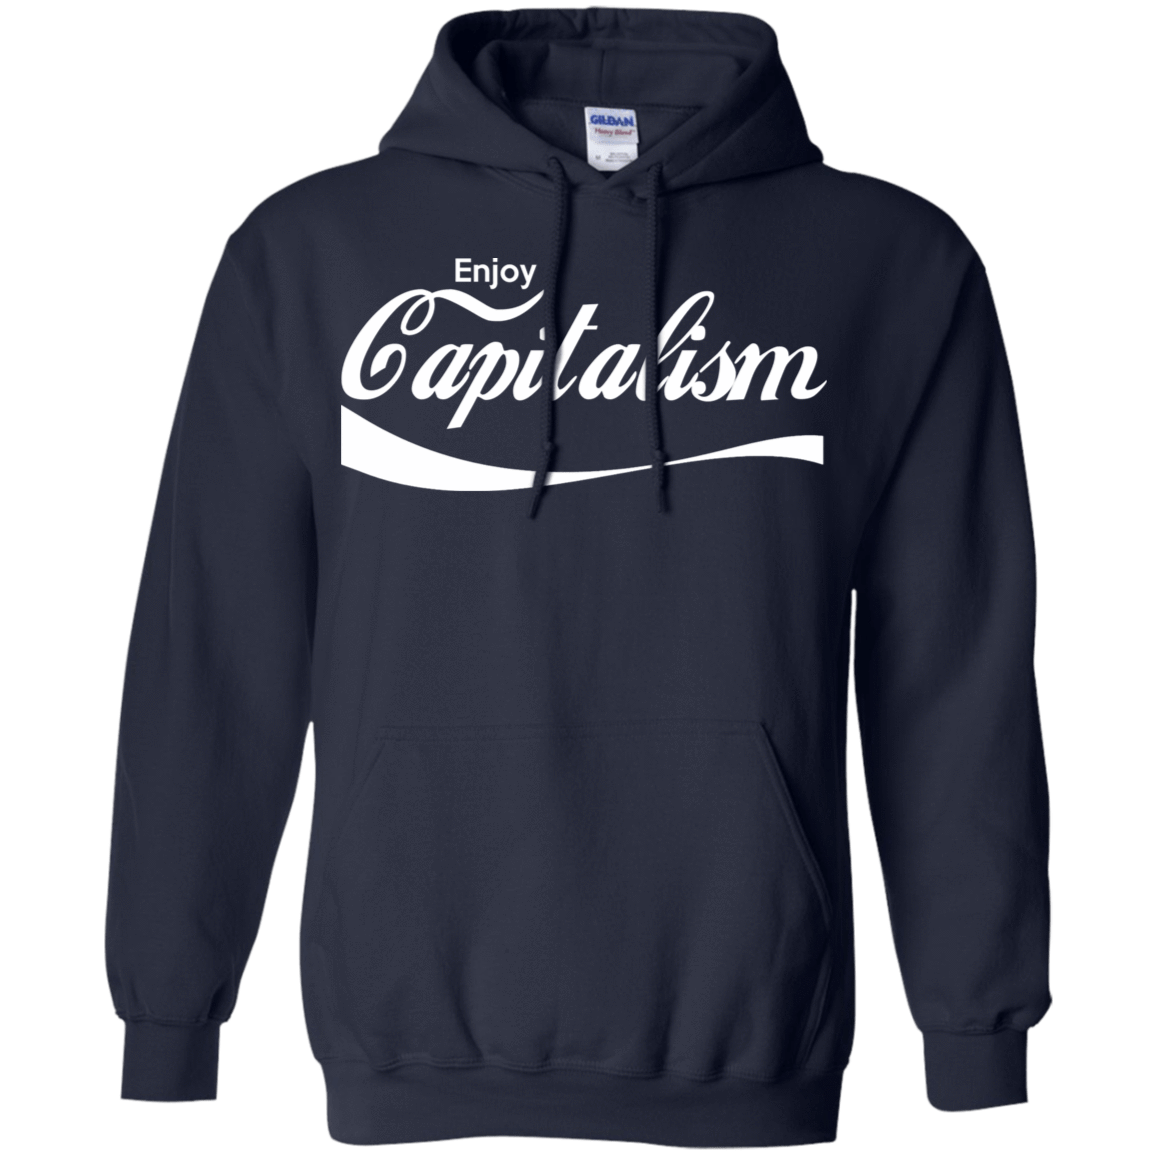 Enjoy Capitalism 541-4742-74209512-23135 - Tee Ript